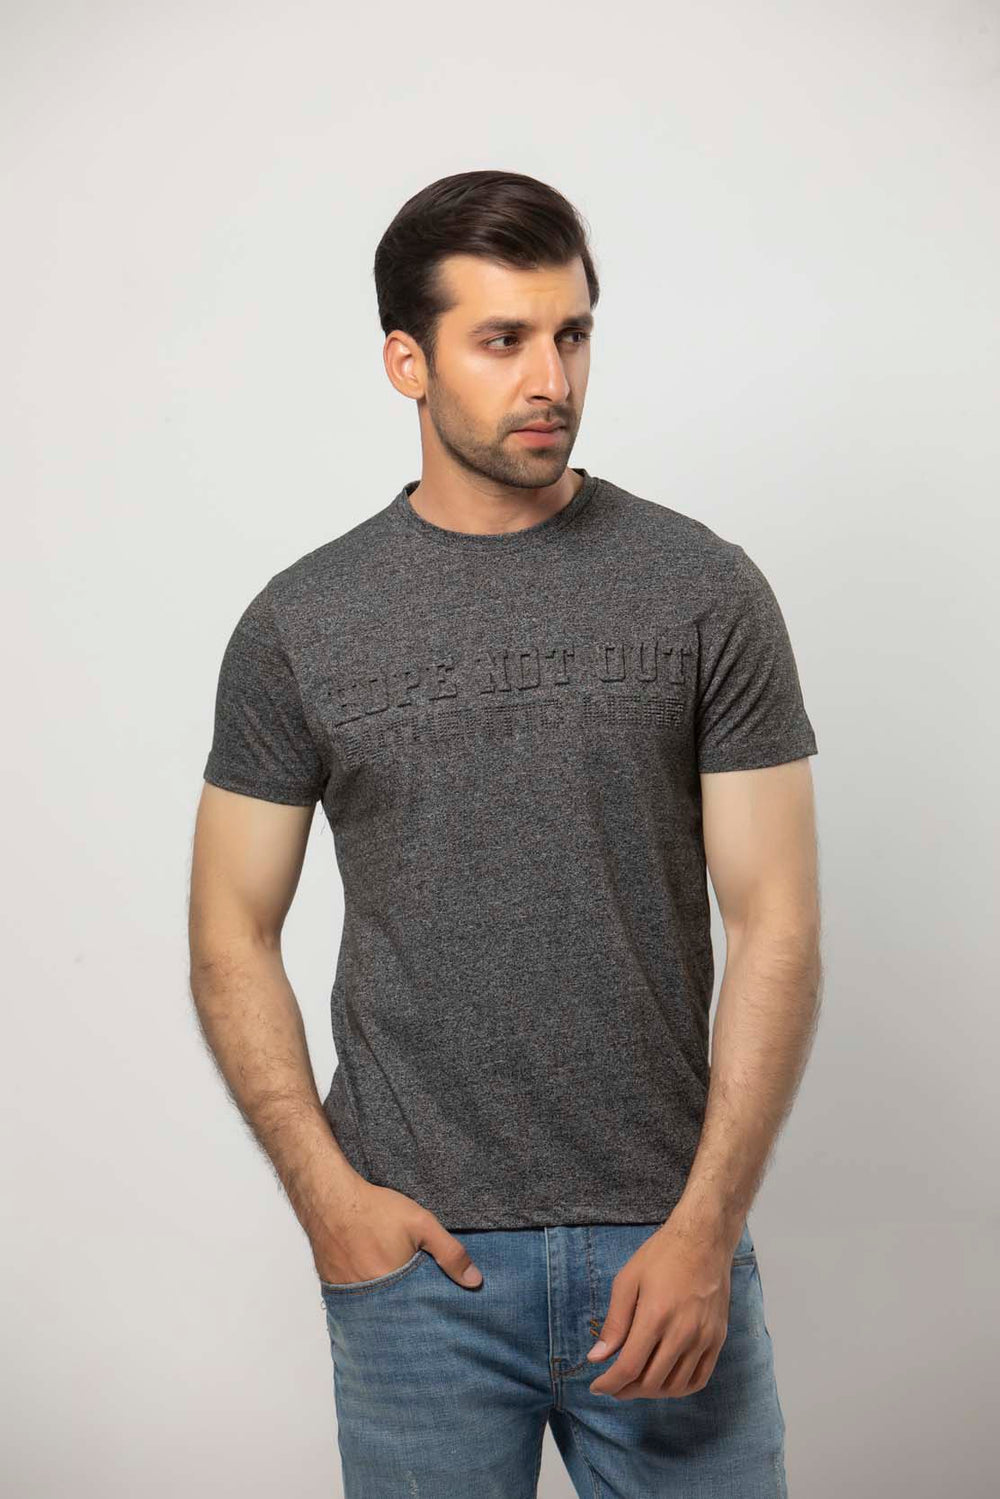 Grey T-SHIRT HMKTS20021